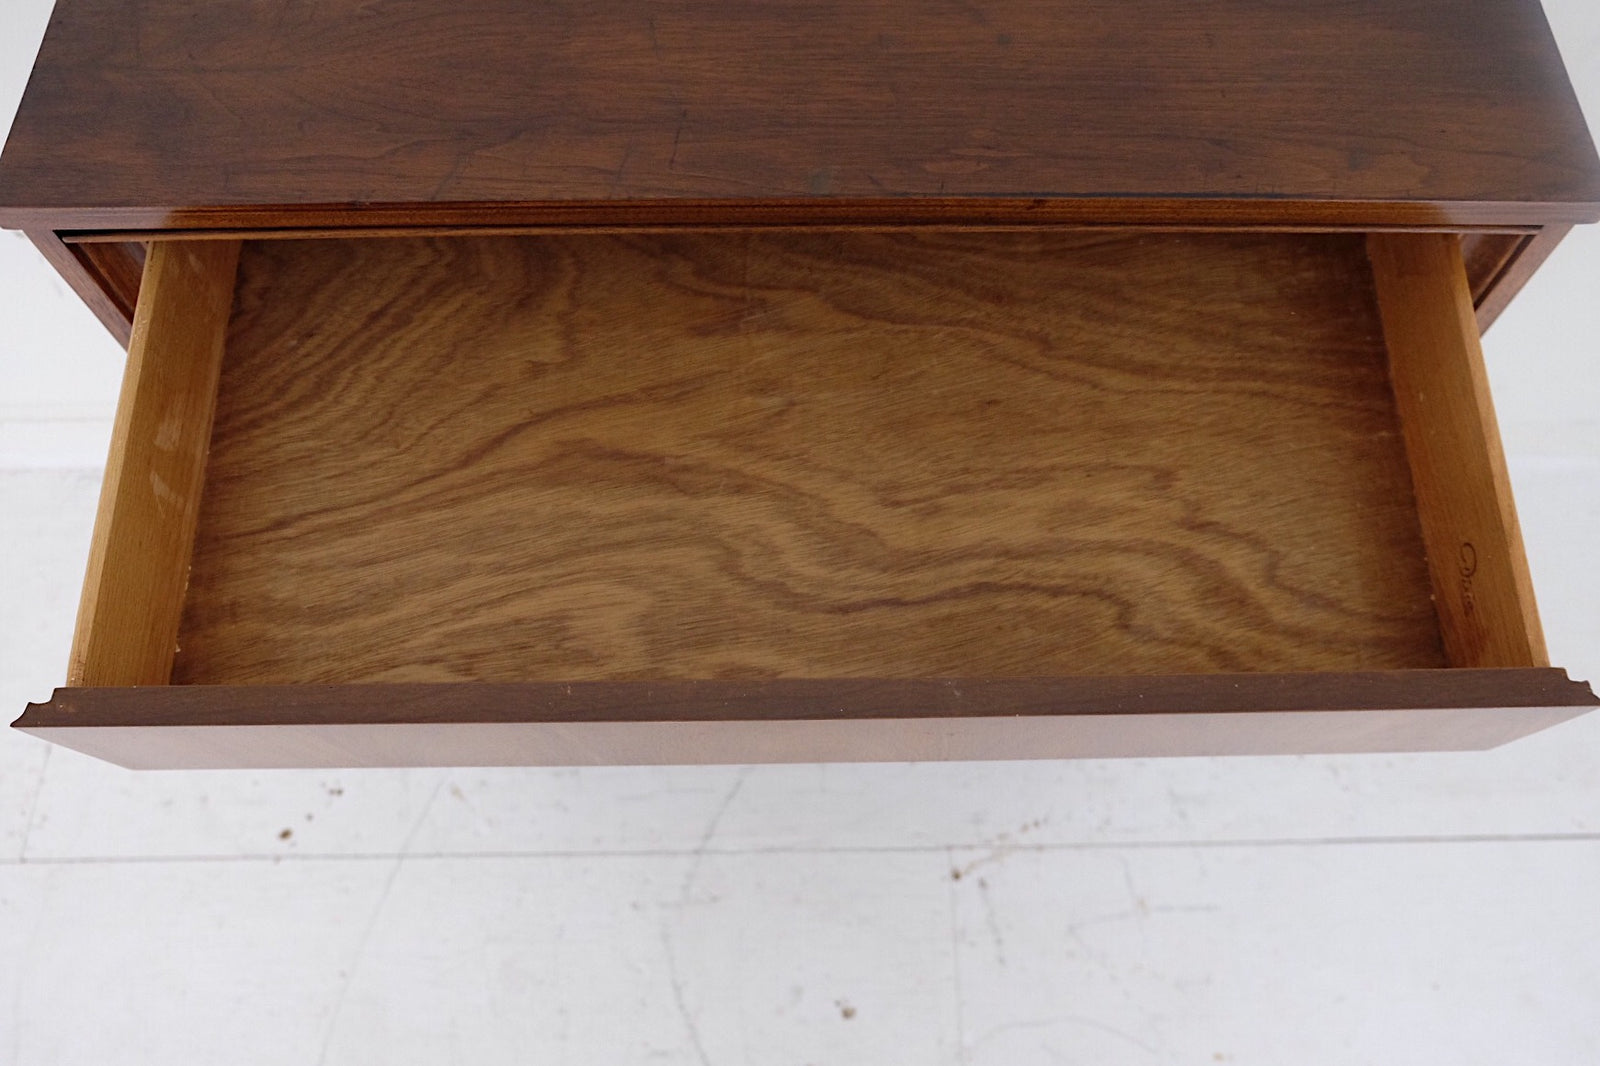 Dixie Four Drawers Leaf Handles Mid Century Modern